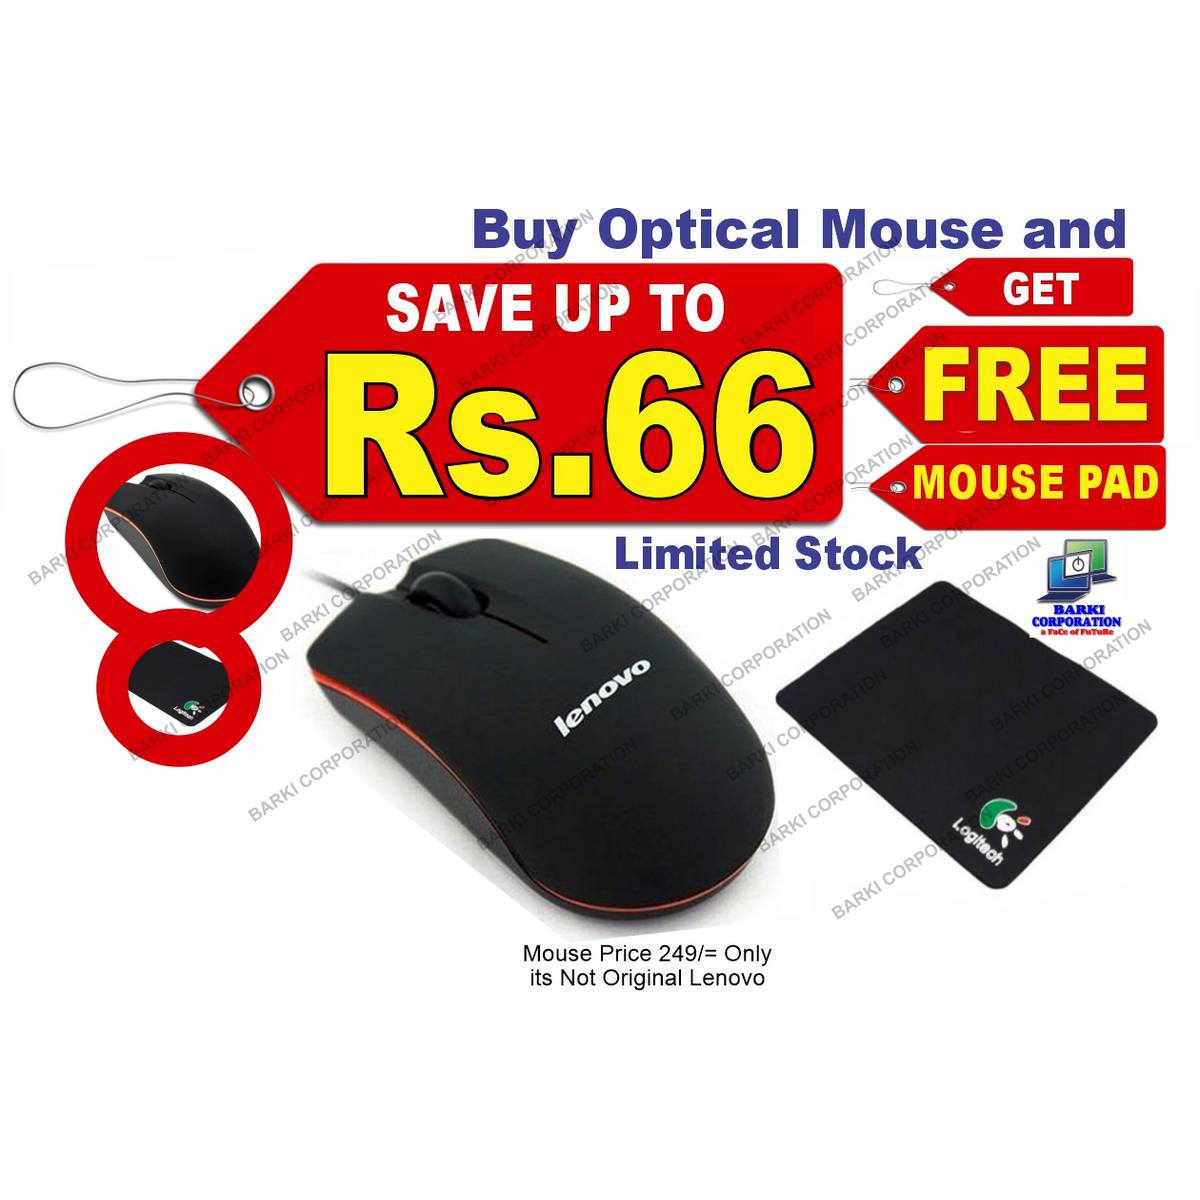 Buy Optical Wired Mouse Mice and Get Free Mouse Pad, Optical Mice Mouse for Computer , Laptop , LED, DVR and Mobile,